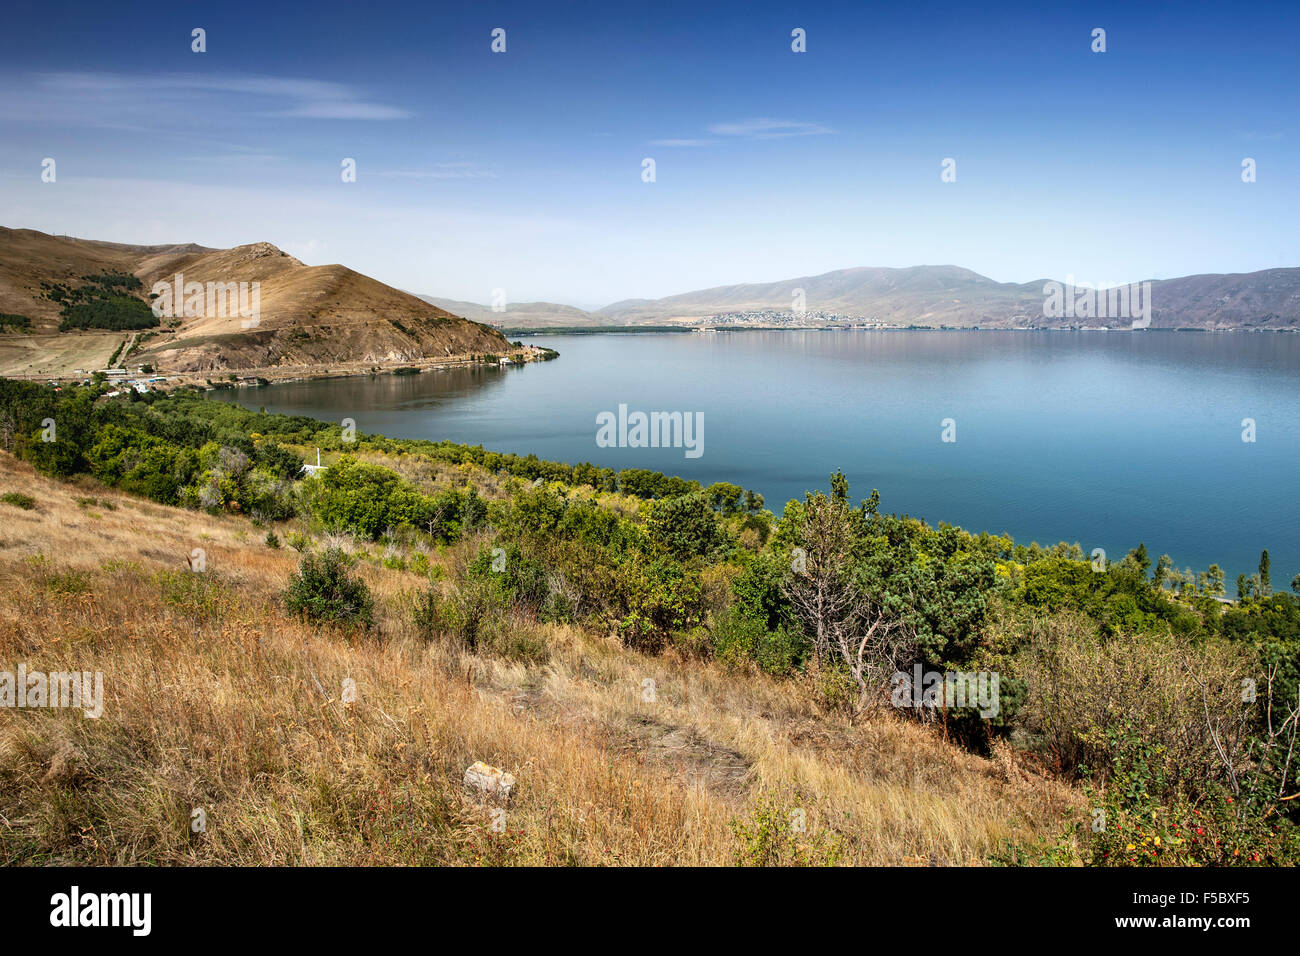 Lake Sevan seen from Sevanavank monastery in the Gegharkunik province of Armenia - Stock Image